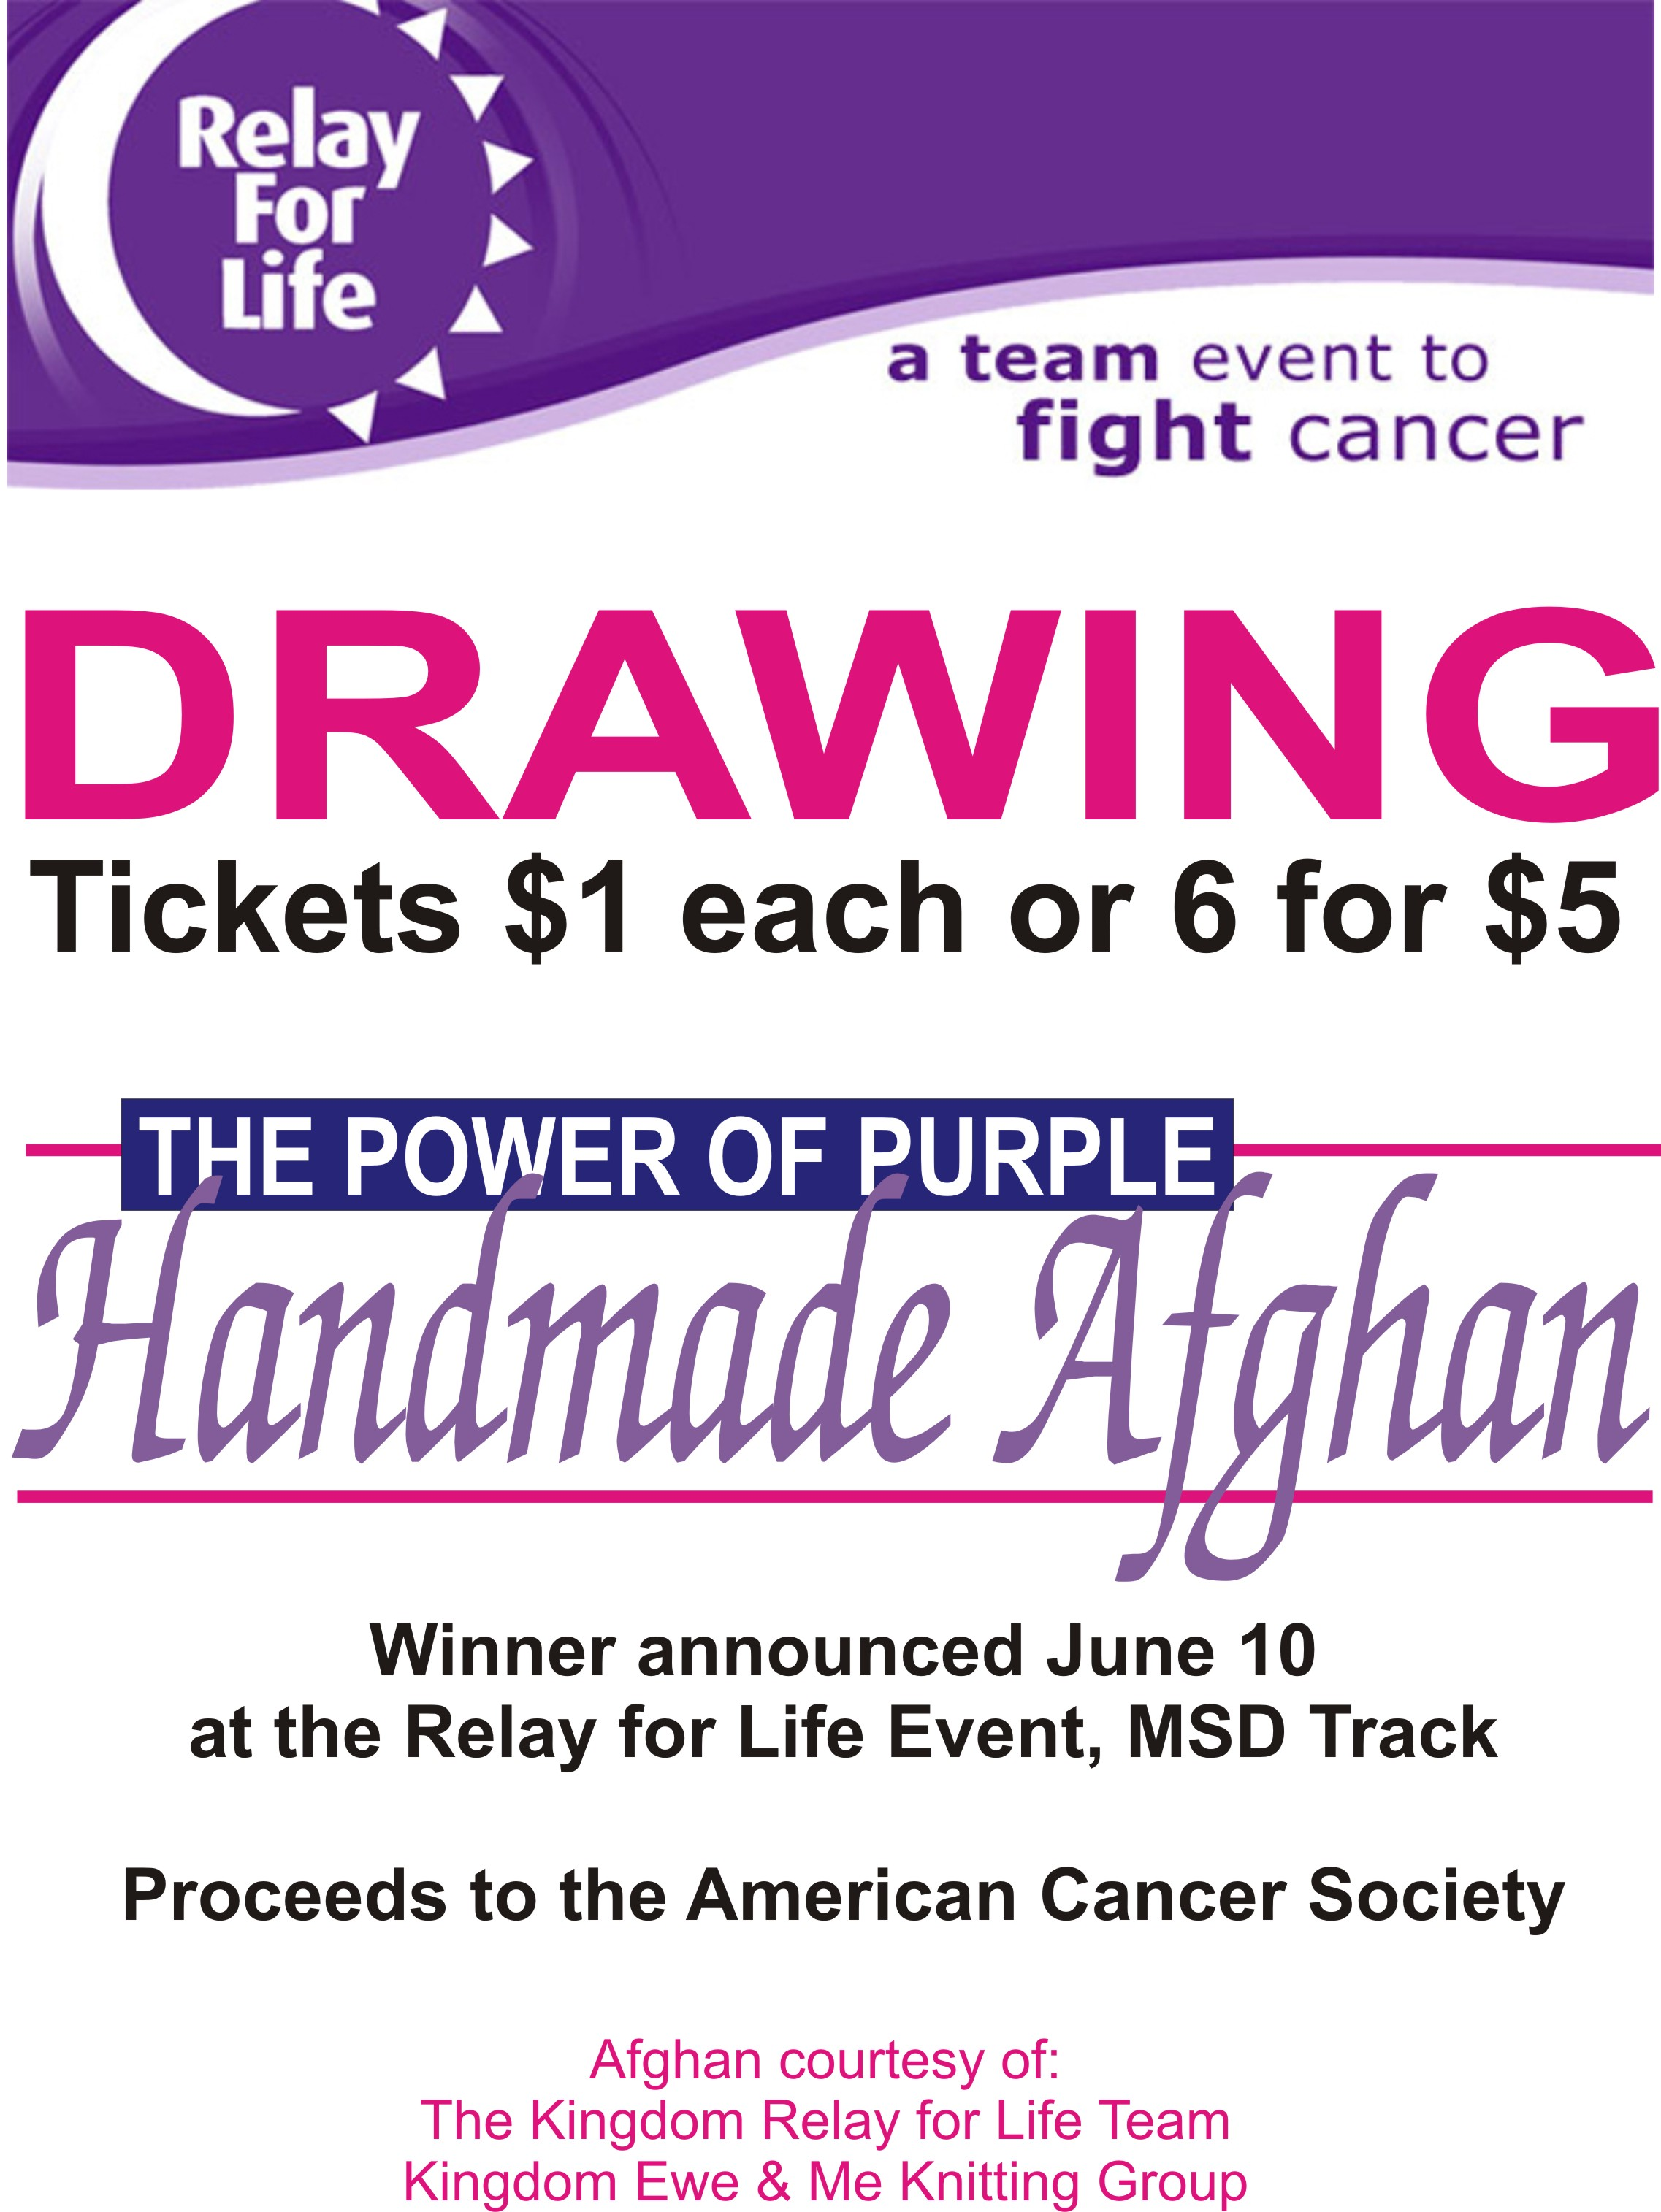 relay for life afghan raffle advertisements